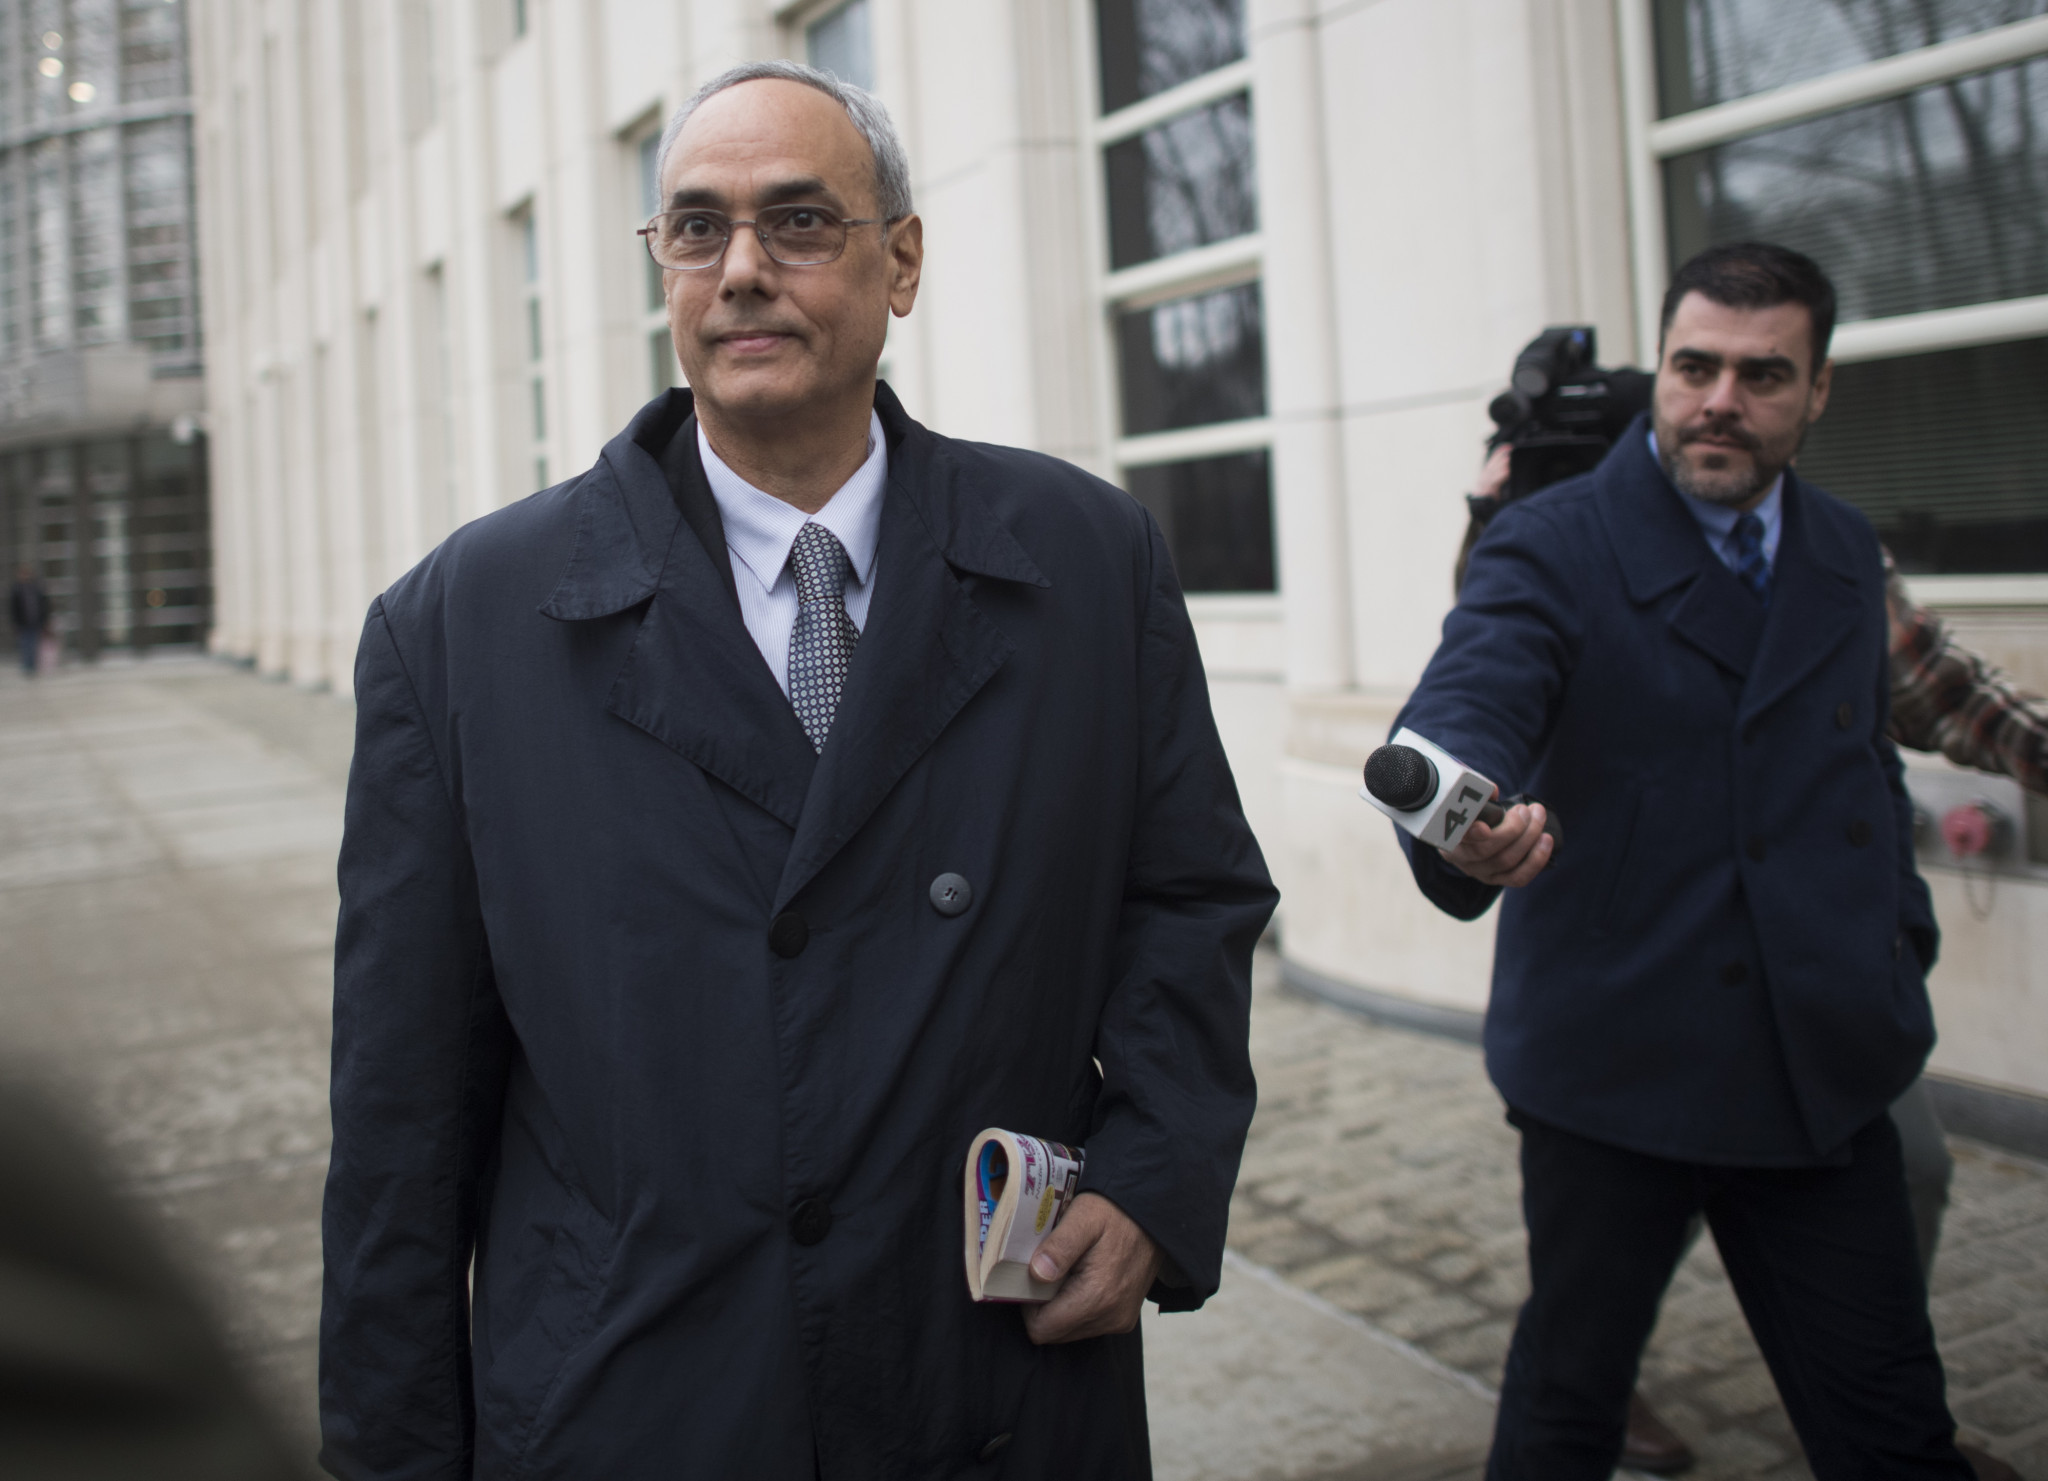 Former Peruvian Football Federation President Manuel Burga has been acquitted of all charges against him ©Getty Images